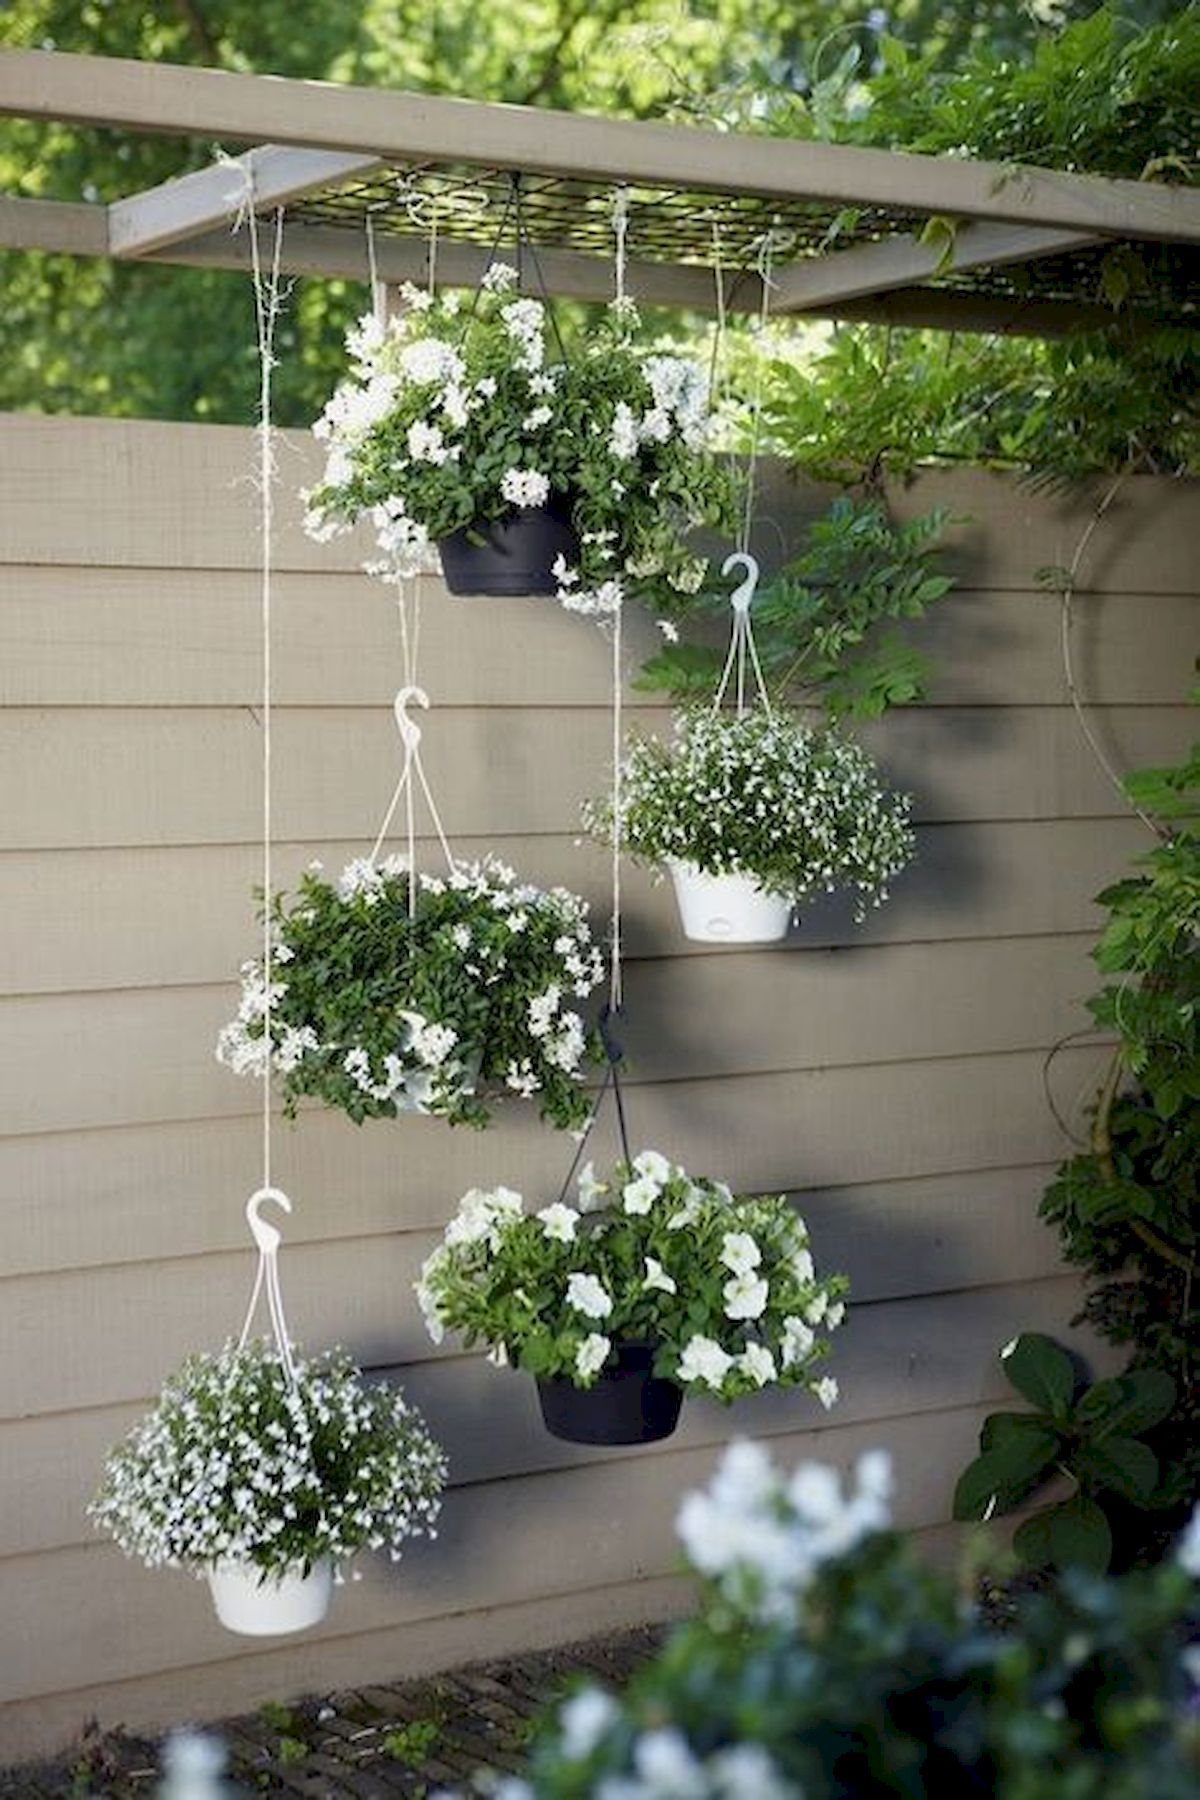 80 Awesome Spring Garden Ideas for Front Yard and Backyard #garden